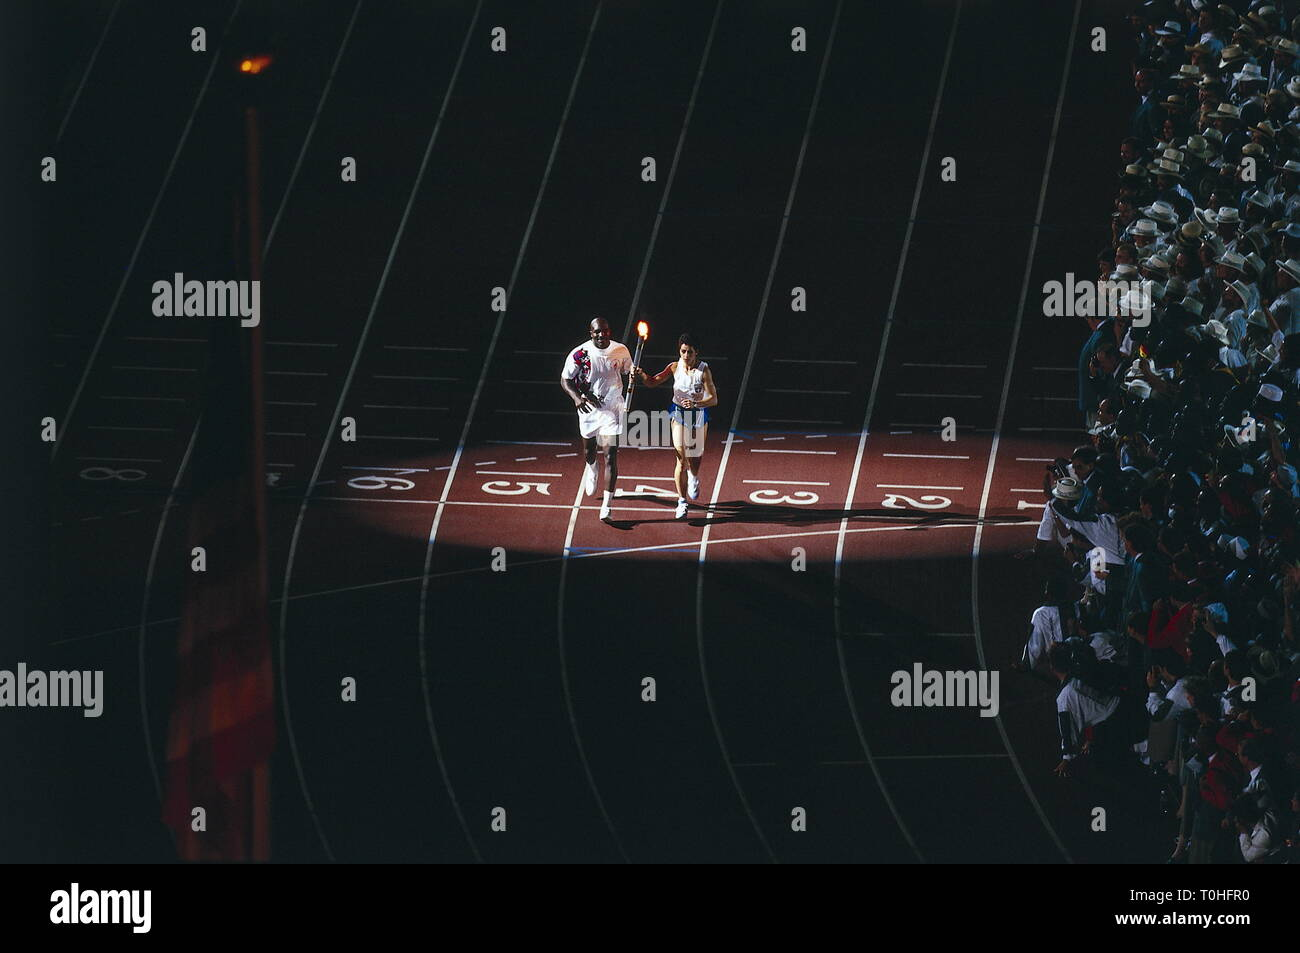 sports, XXVI Olympic Games, Atlanta, opening ceremony, Evander Holyfield with the Olympic torch, 1996, Additional-Rights-Clearance-Info-Not-Available - Stock Image